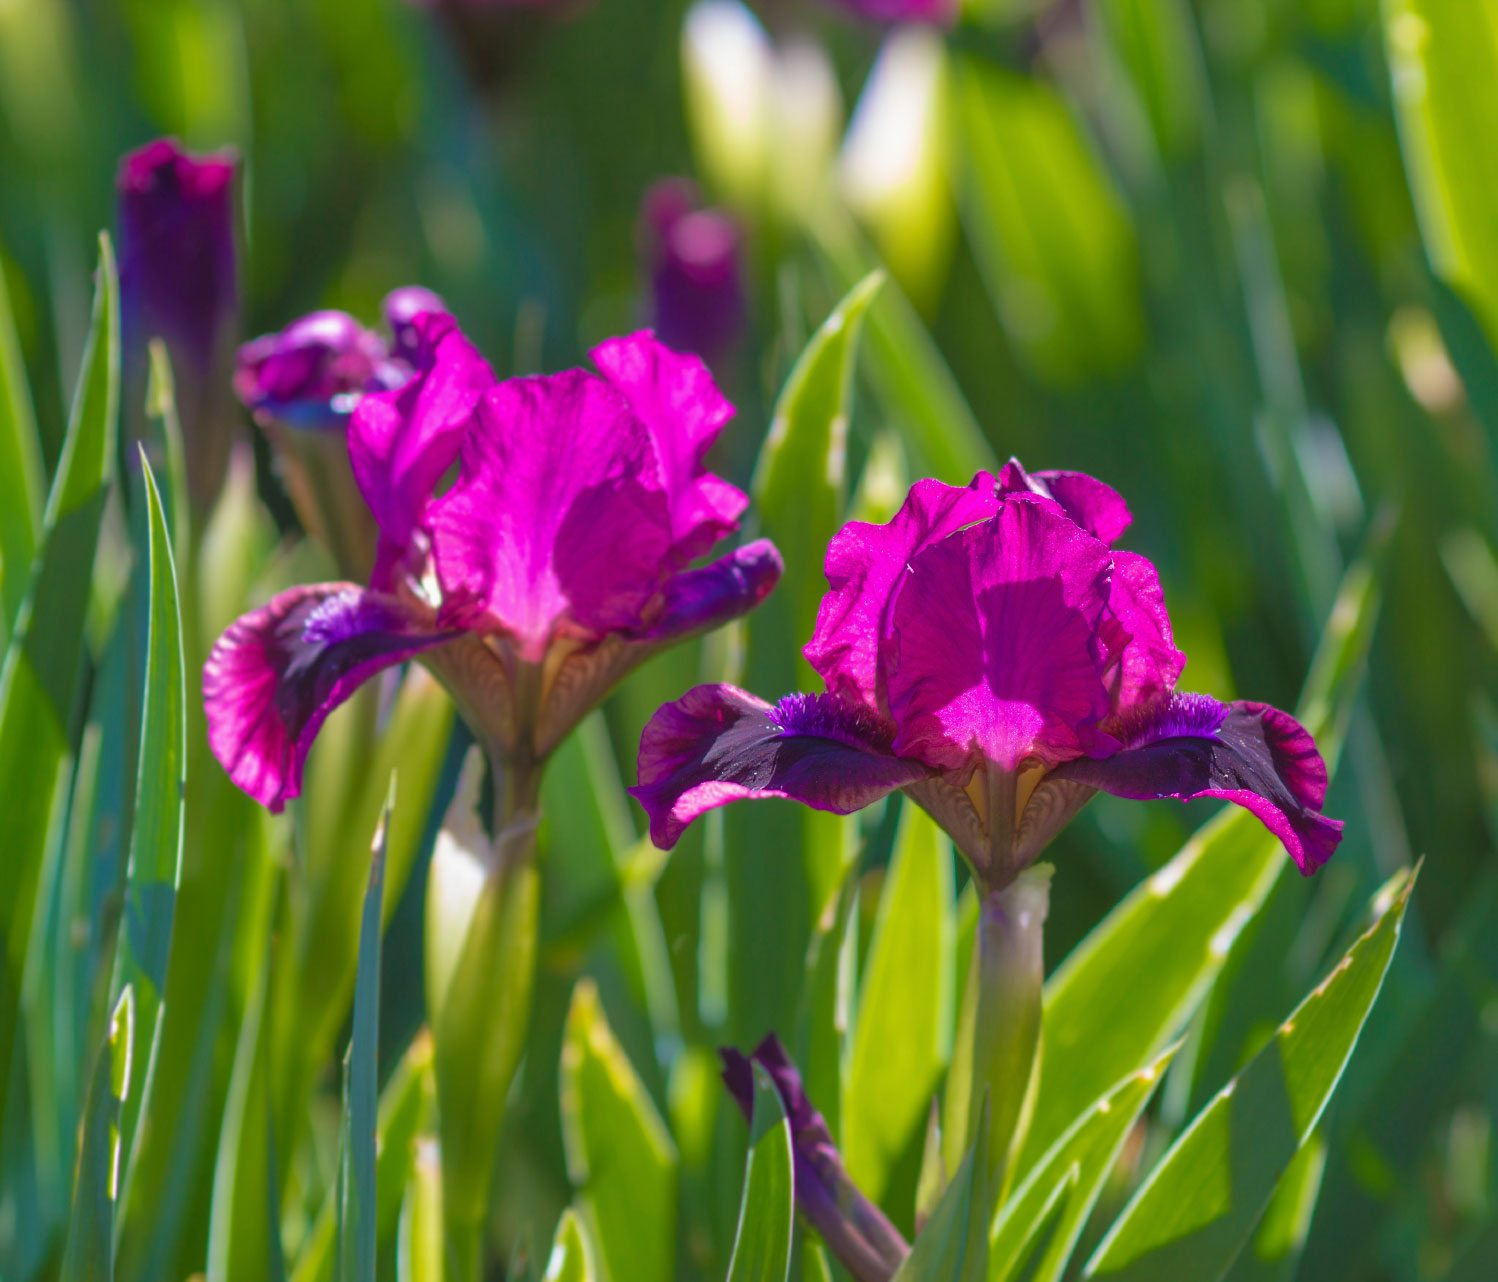 Iris Plants Tips For Growing Iris